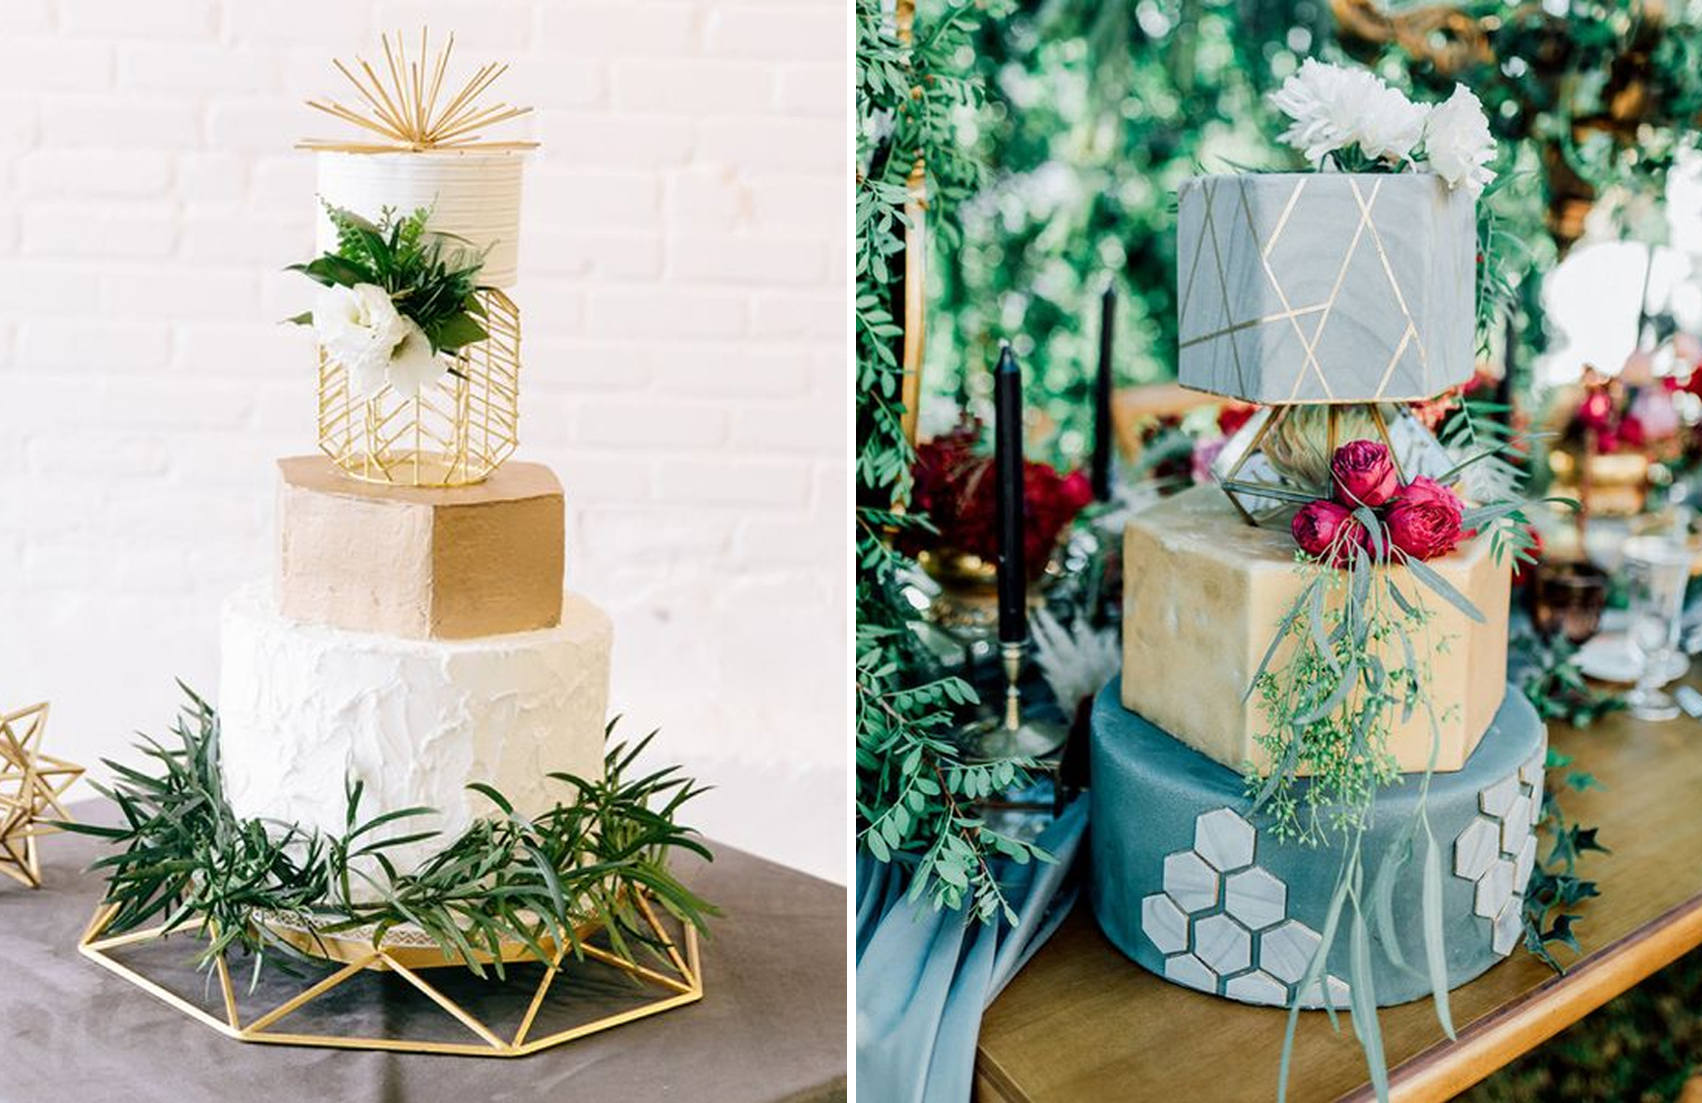 Geometrical shapes wedding cake